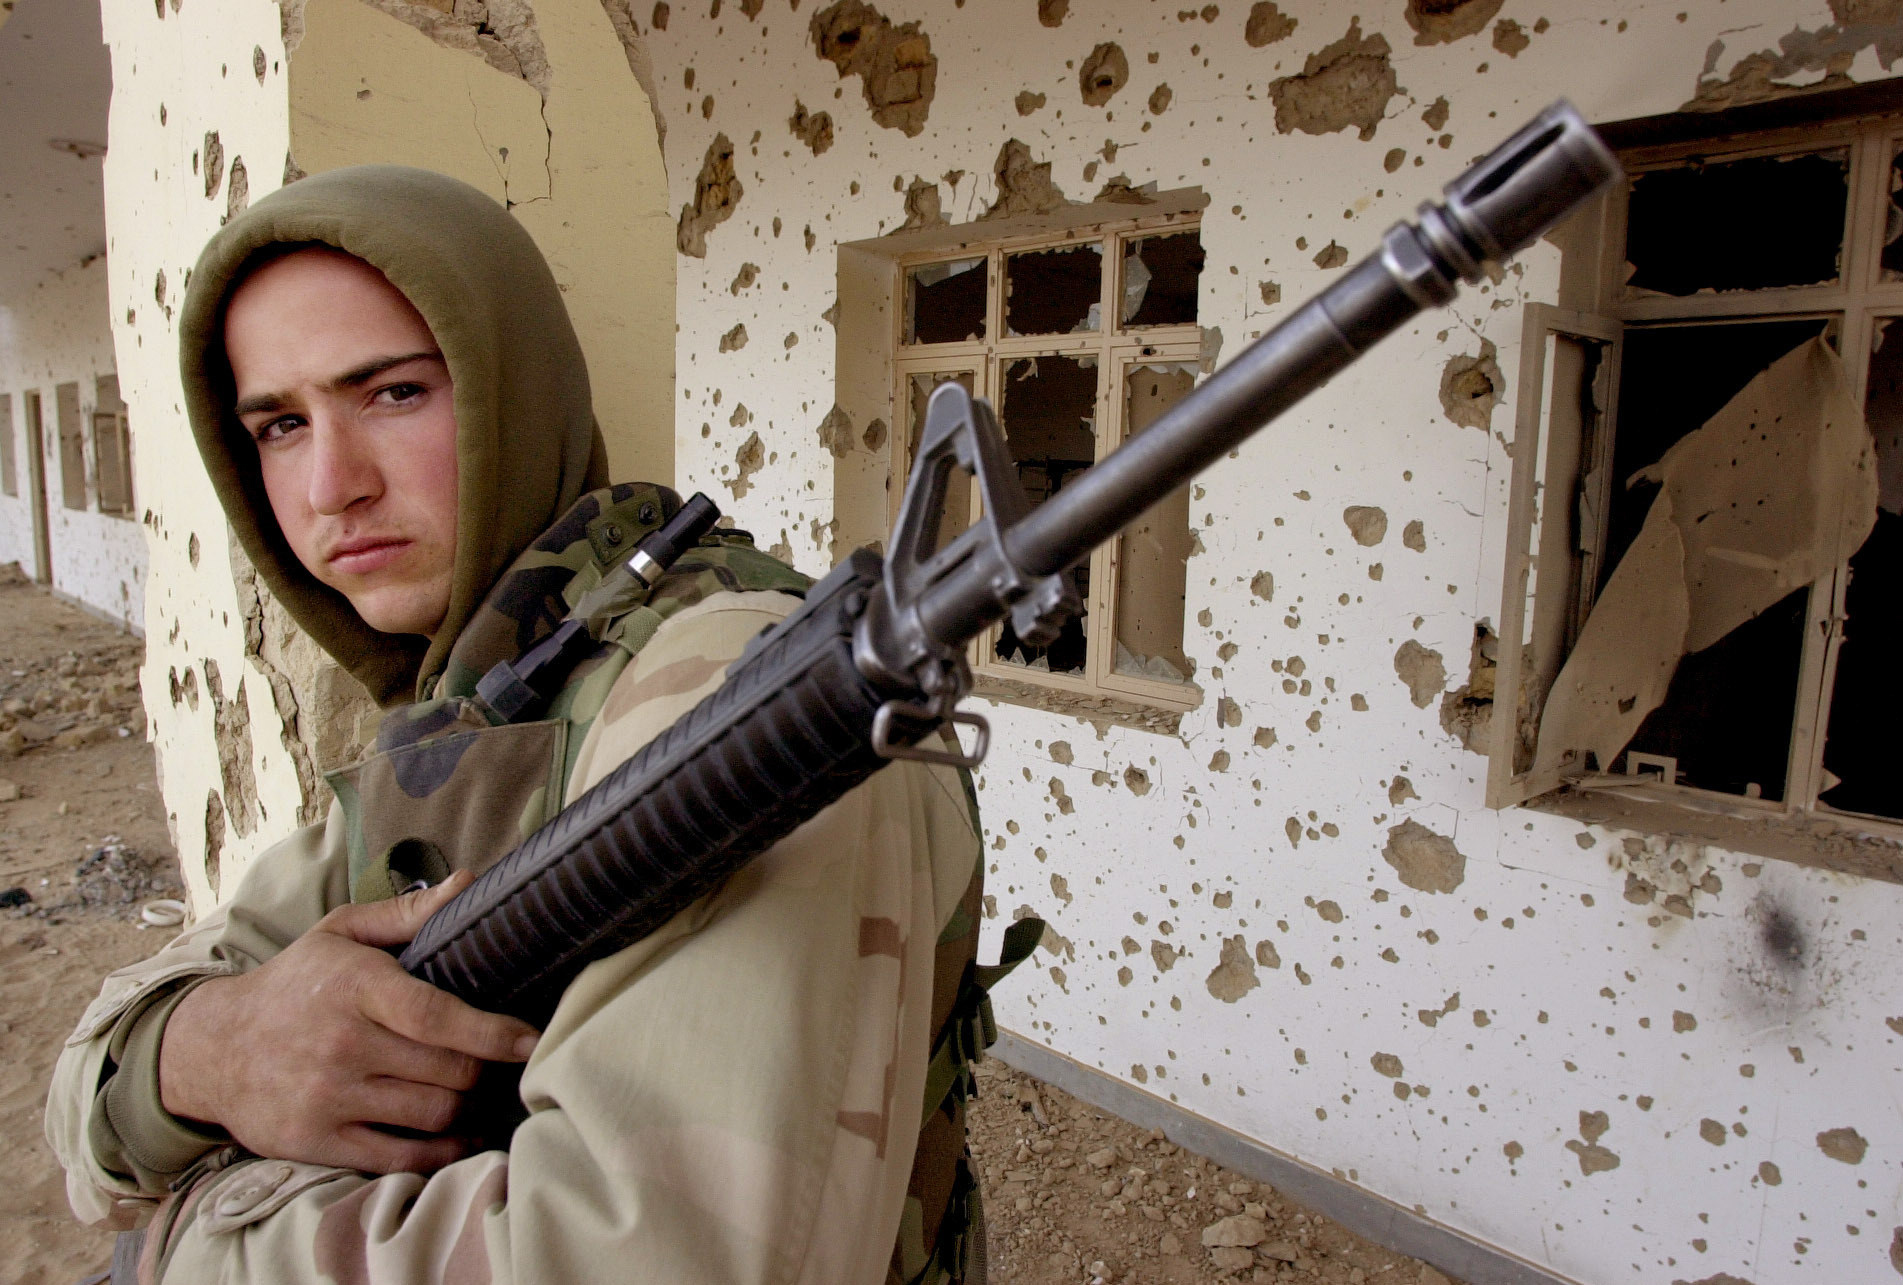 A young man stands with a gun in front of a bullet riddled building in Afghanistan